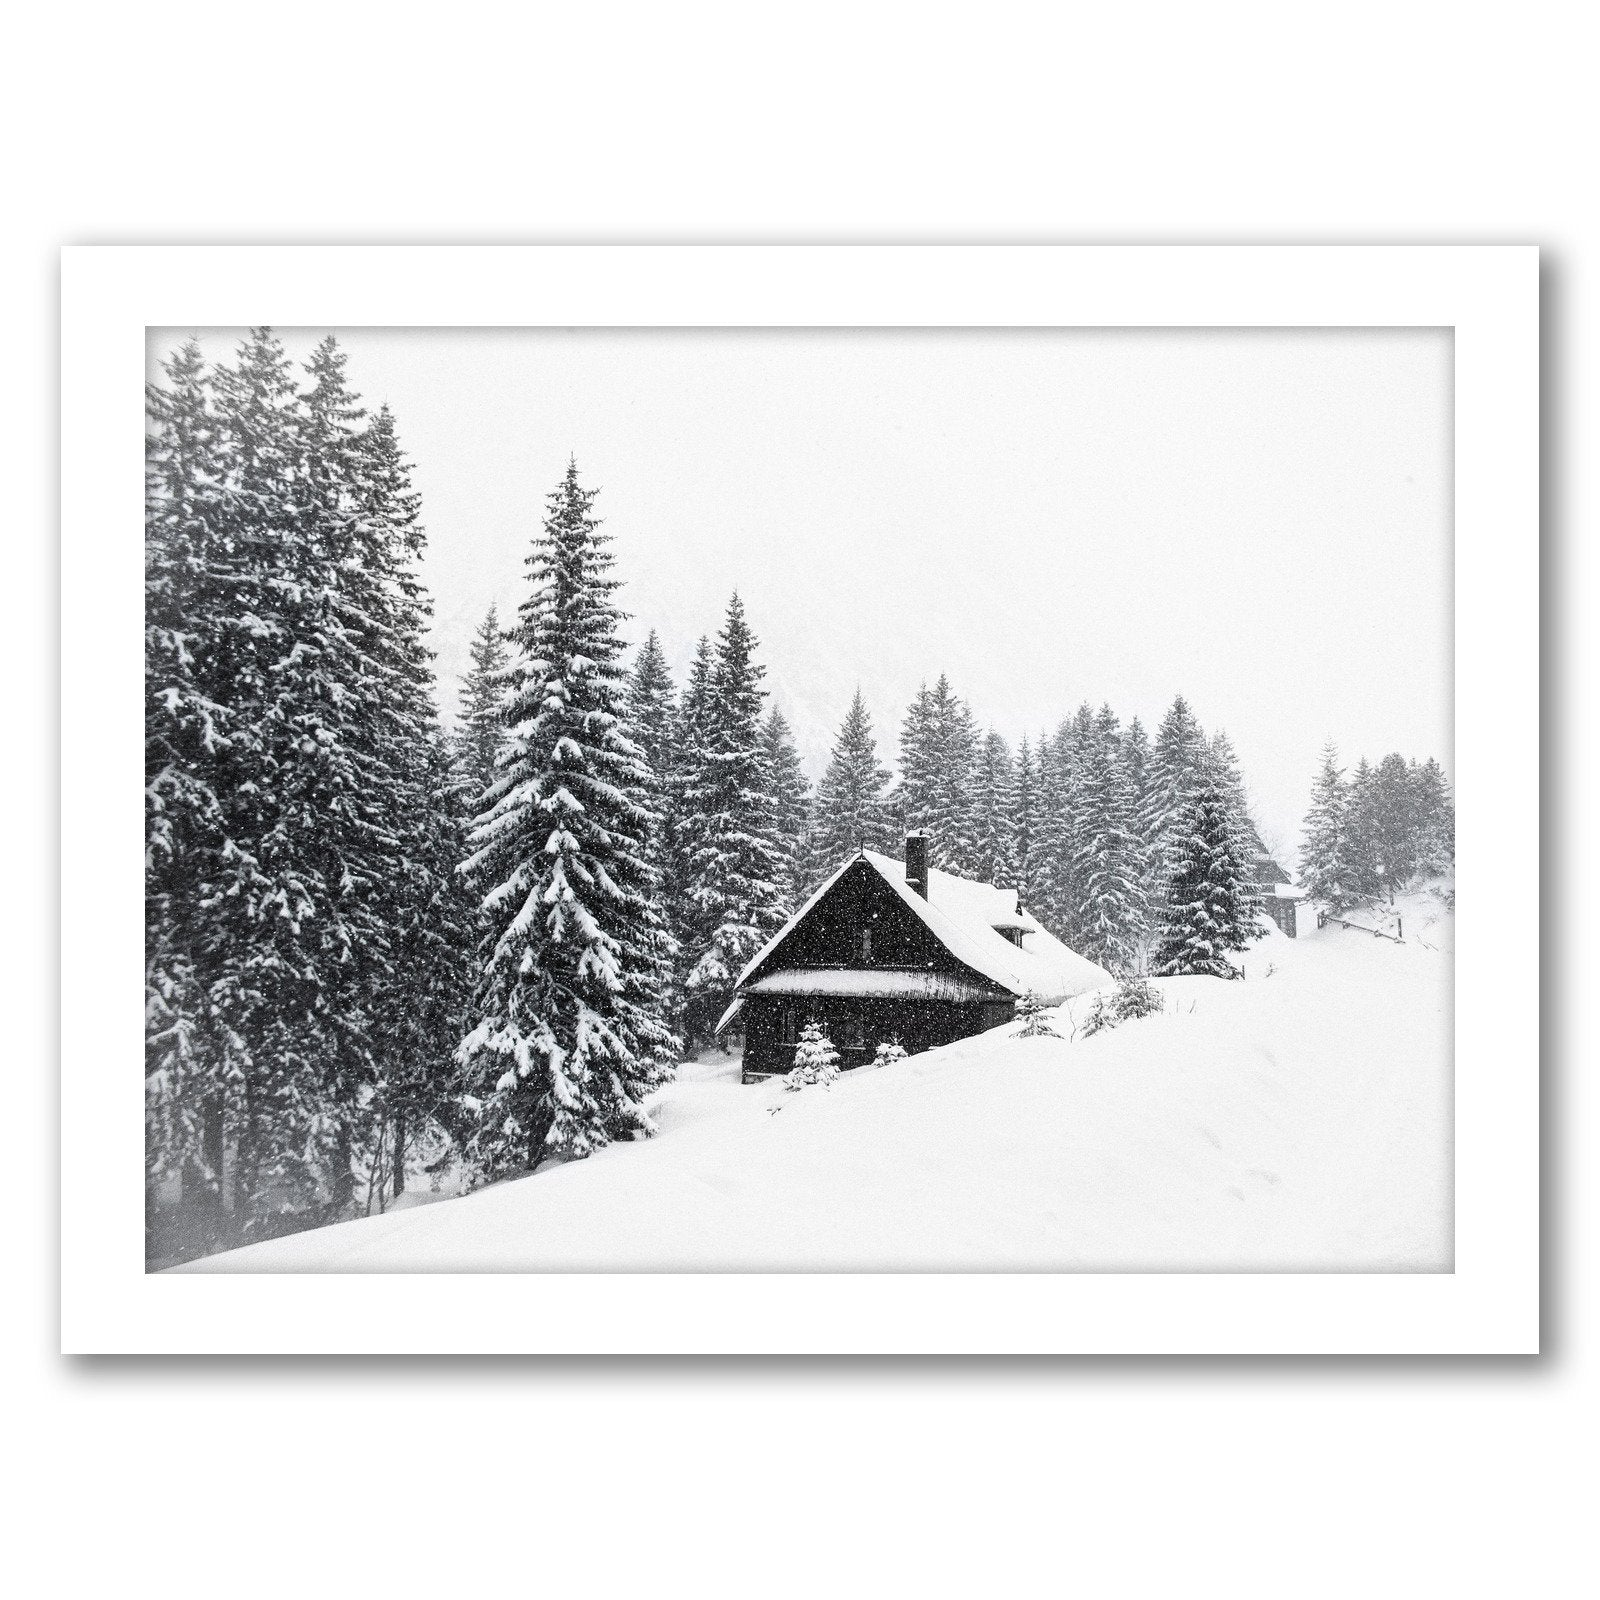 Winter Nature Scene by Tanya Shumkina - Framed Print - Americanflat